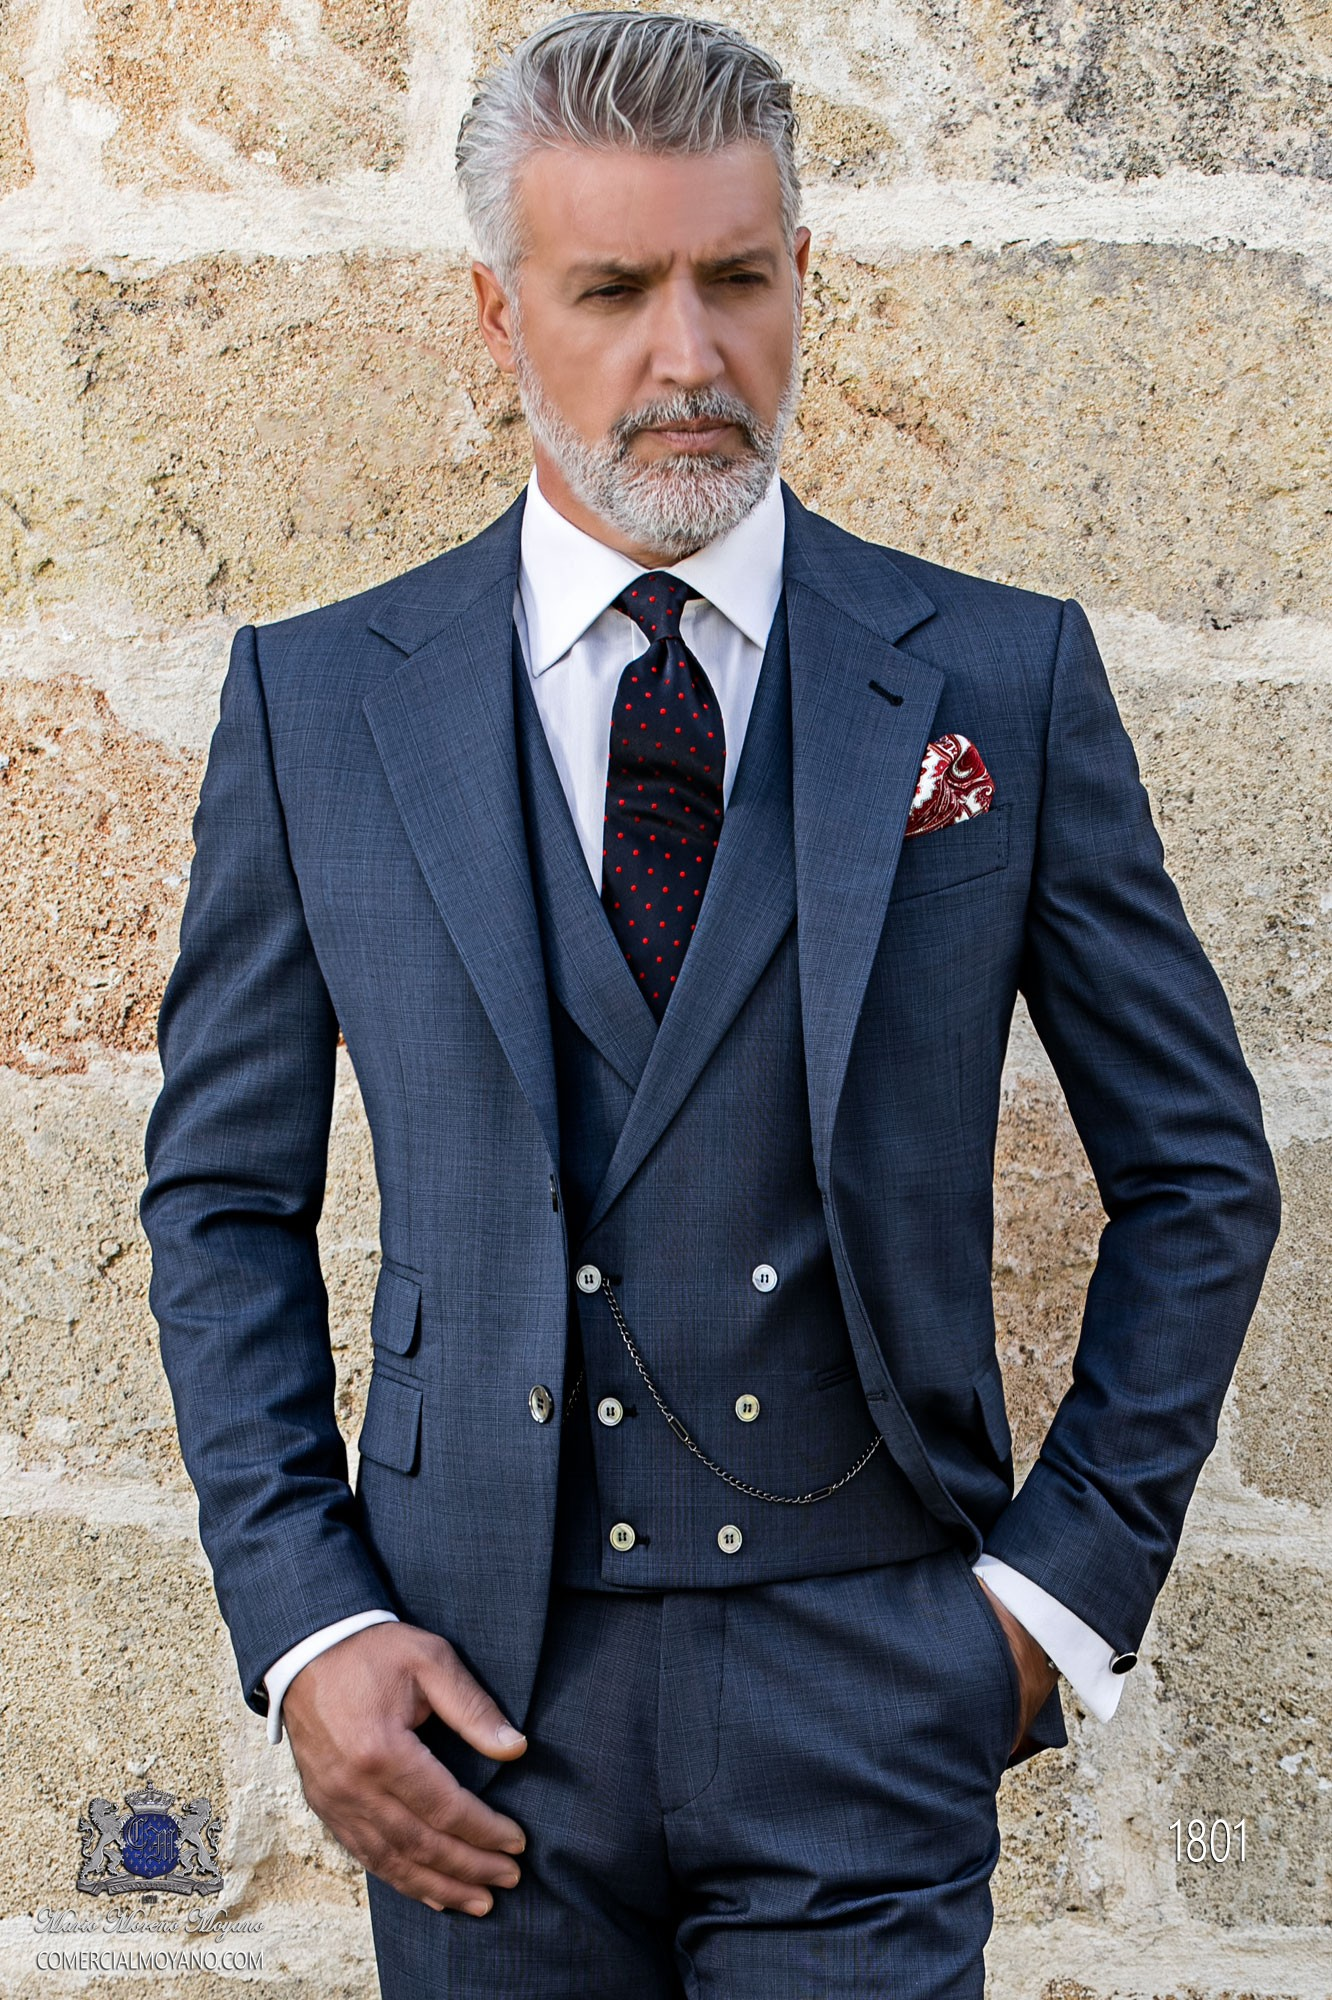 Bespoke Prince of Wales blue and red suit model 1801 Ottavio Nuccio Gala